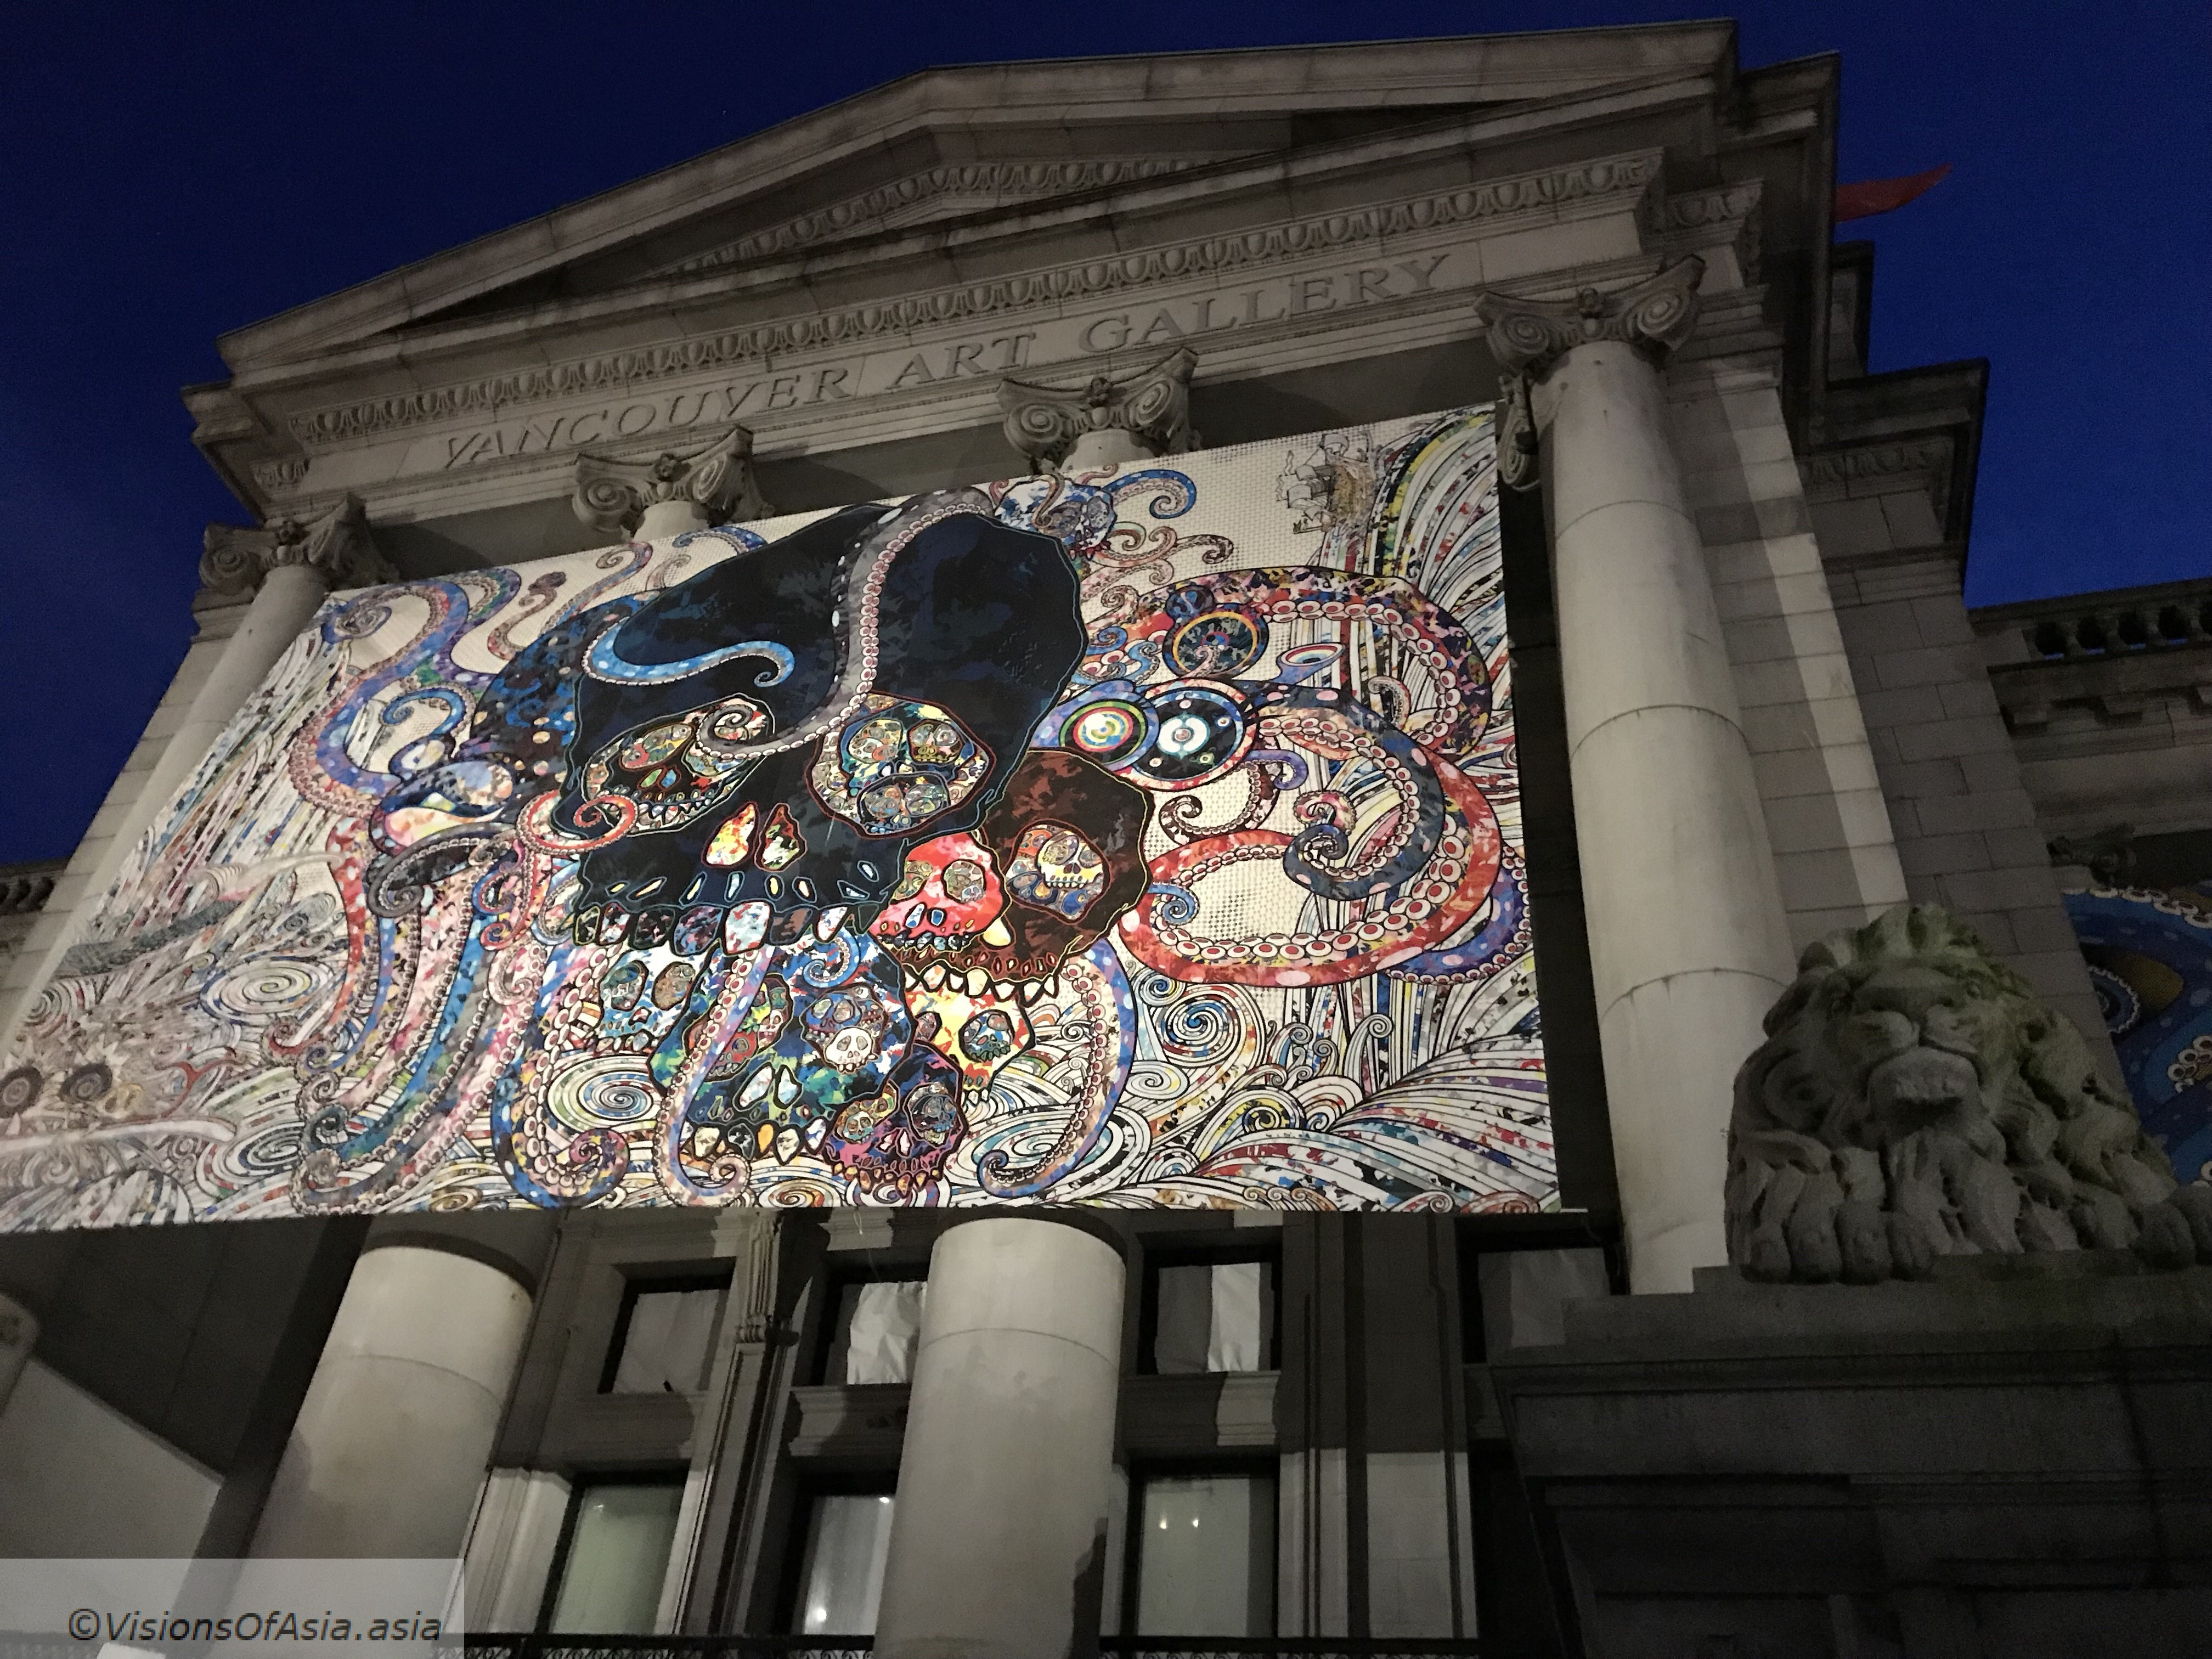 Vancouver Art Gallery front